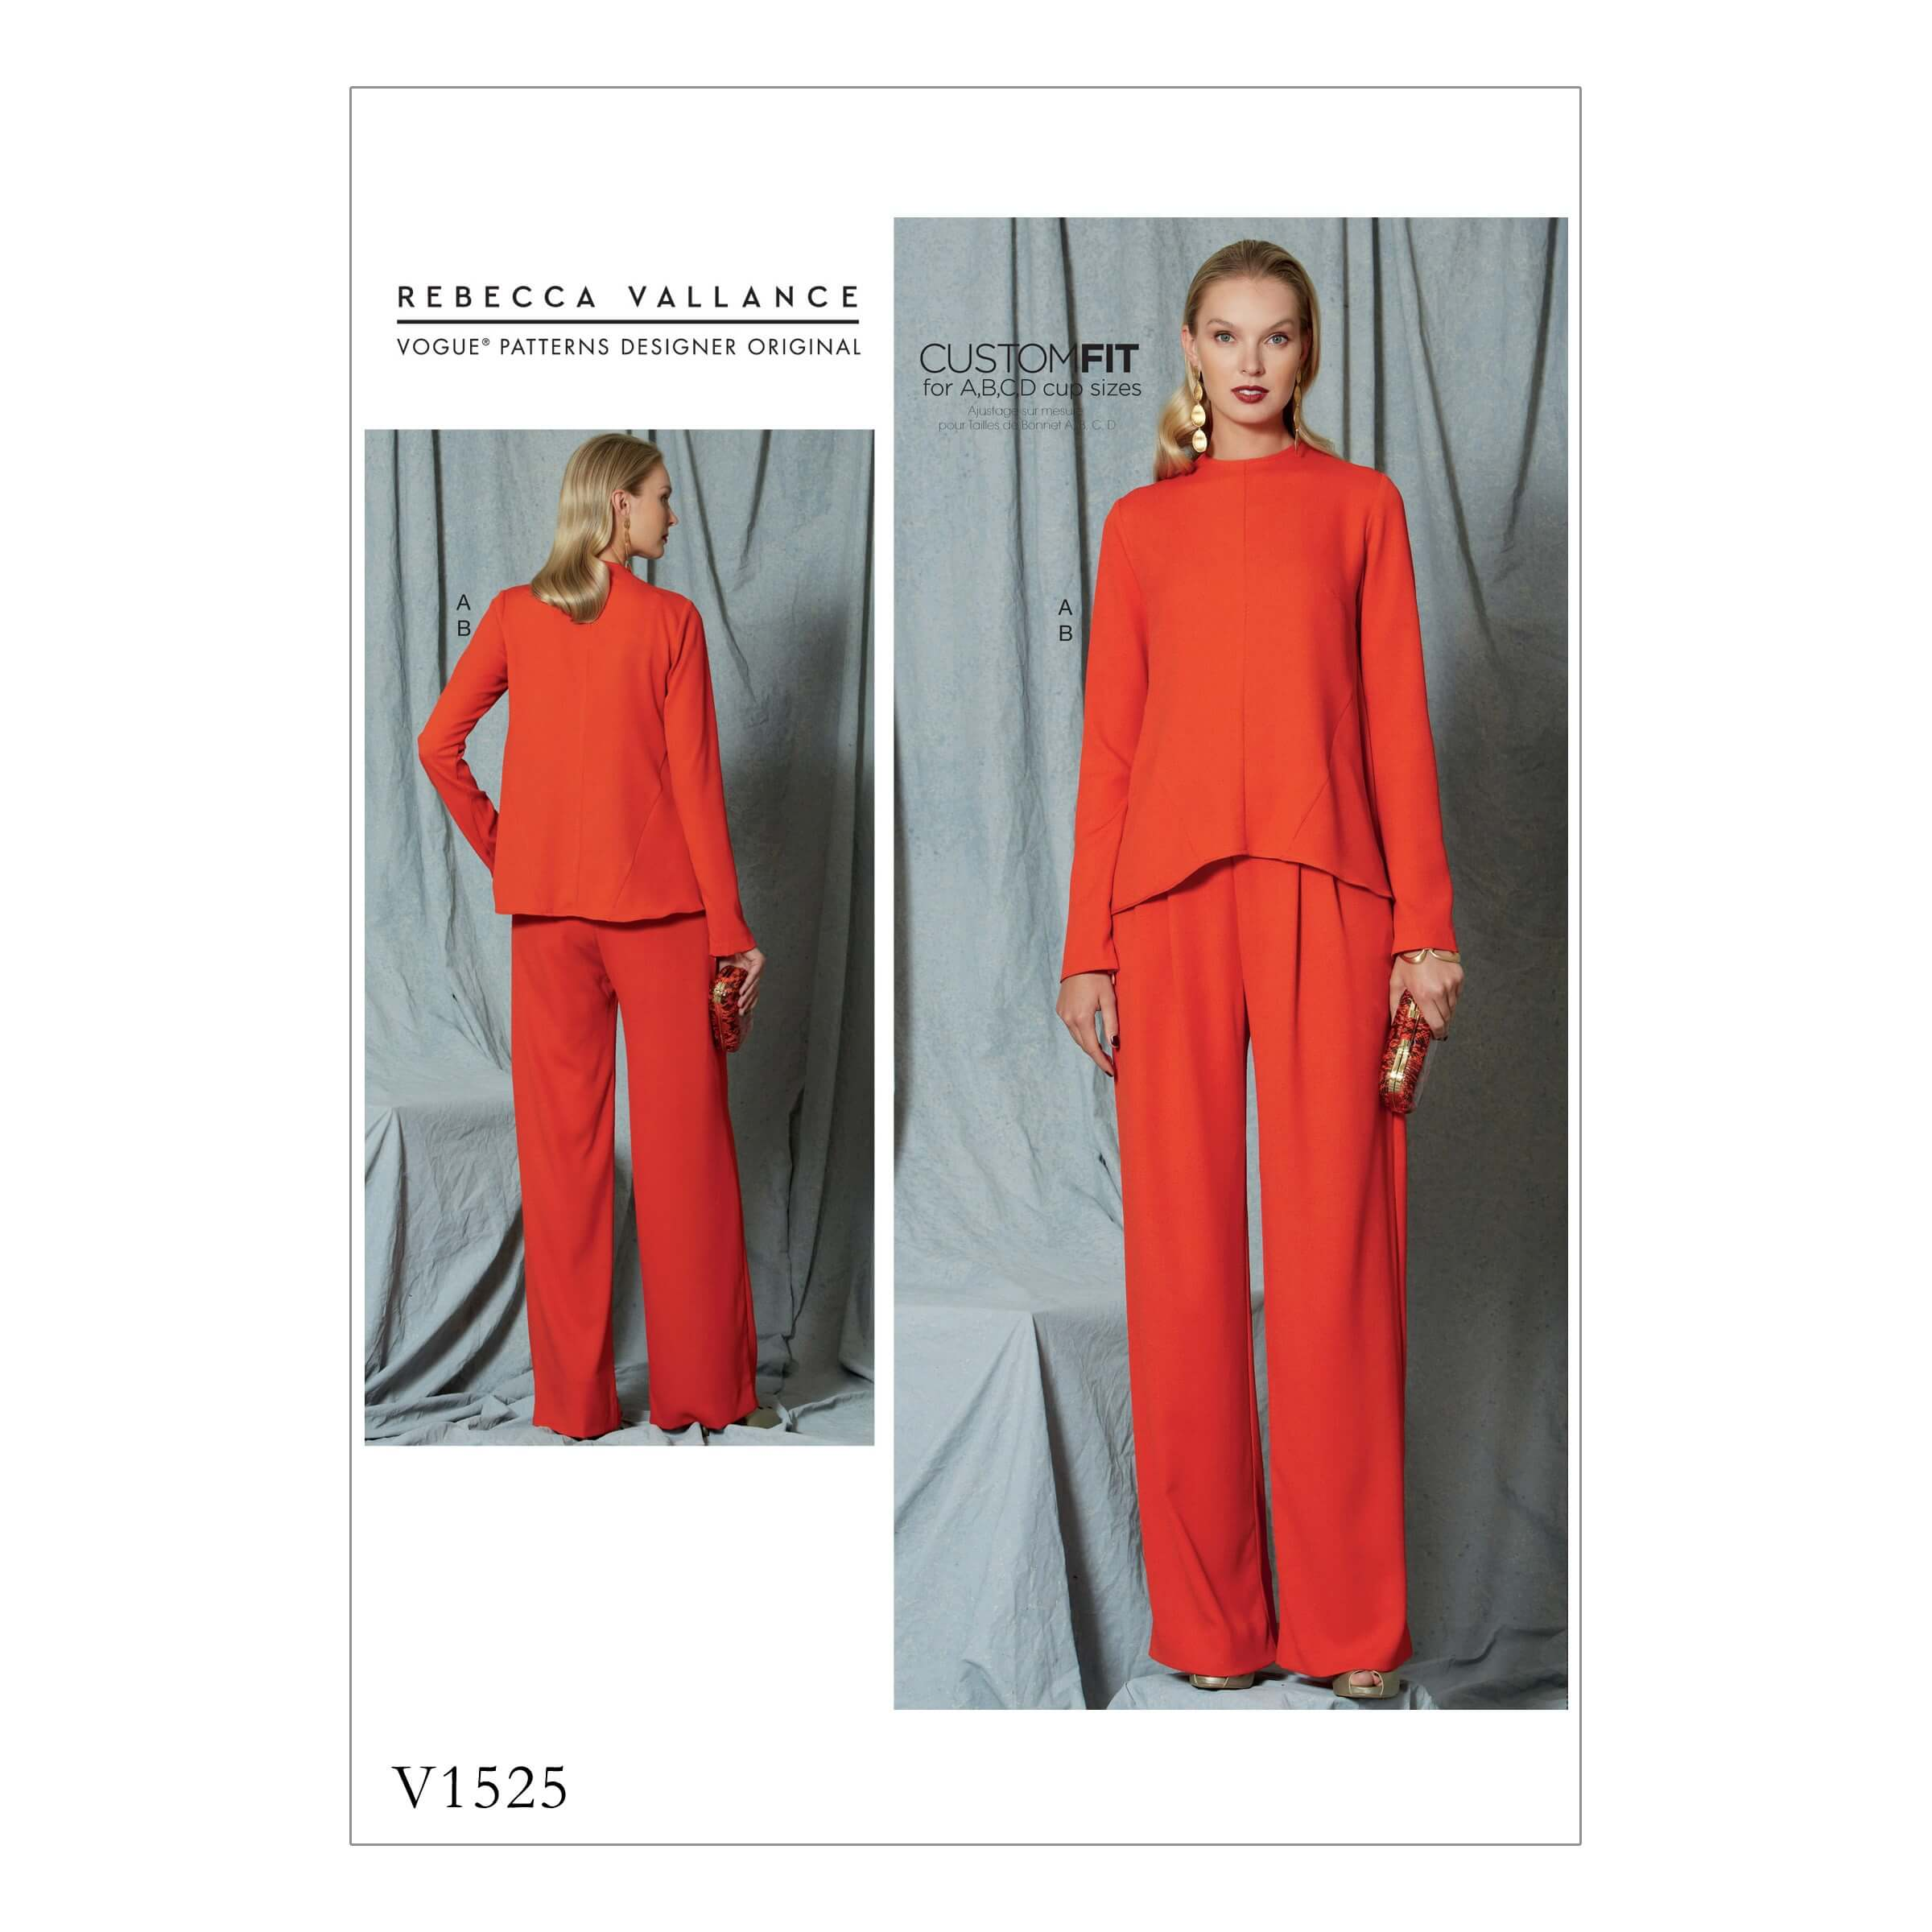 Vogue Sewing Pattern V1525 Women's Diagonal Seam Top and Pleated Trousers